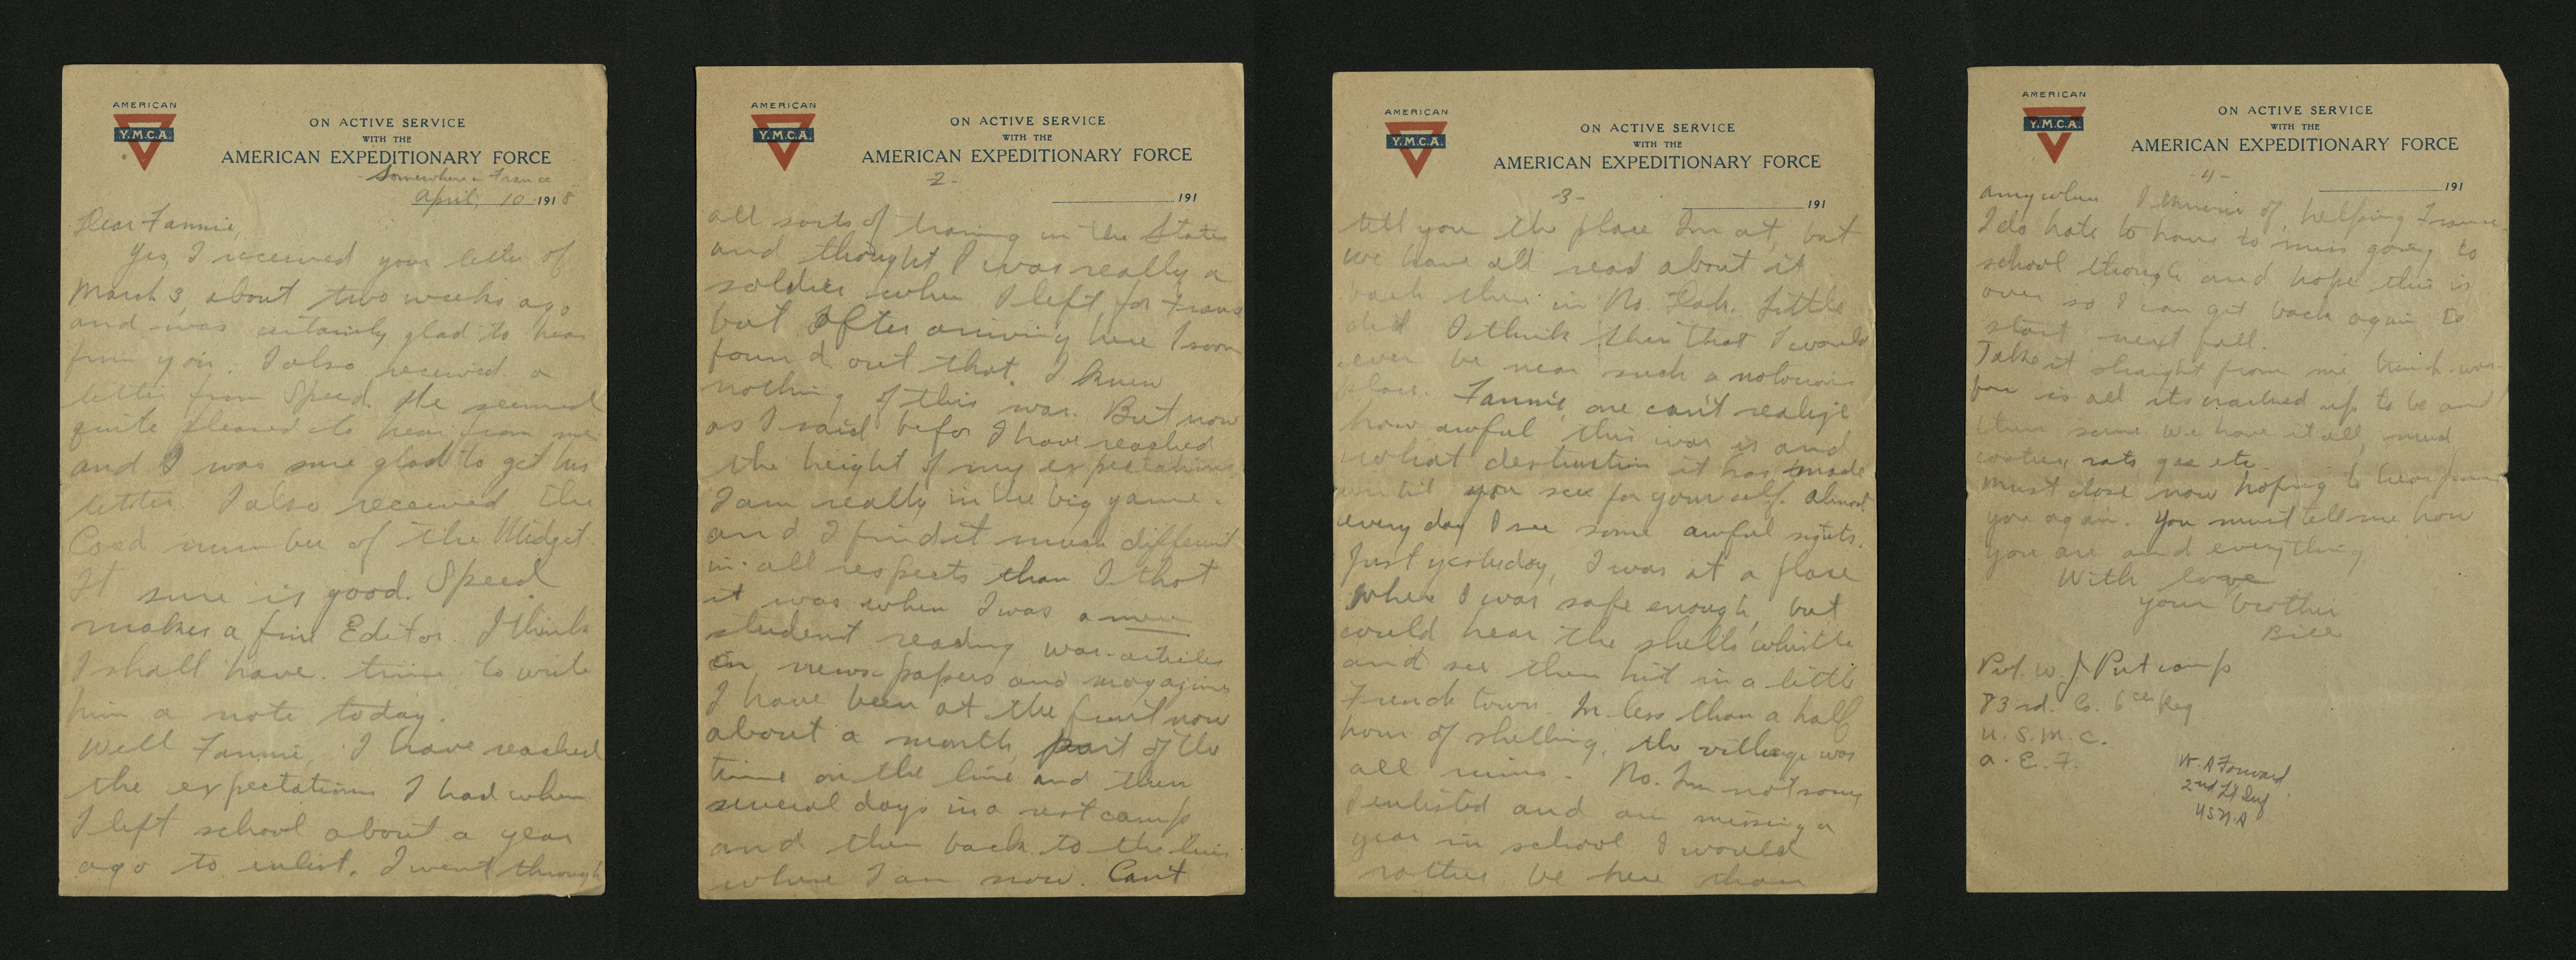 Letter from William J. Putcamp to Fannie, dated 10 April 1918